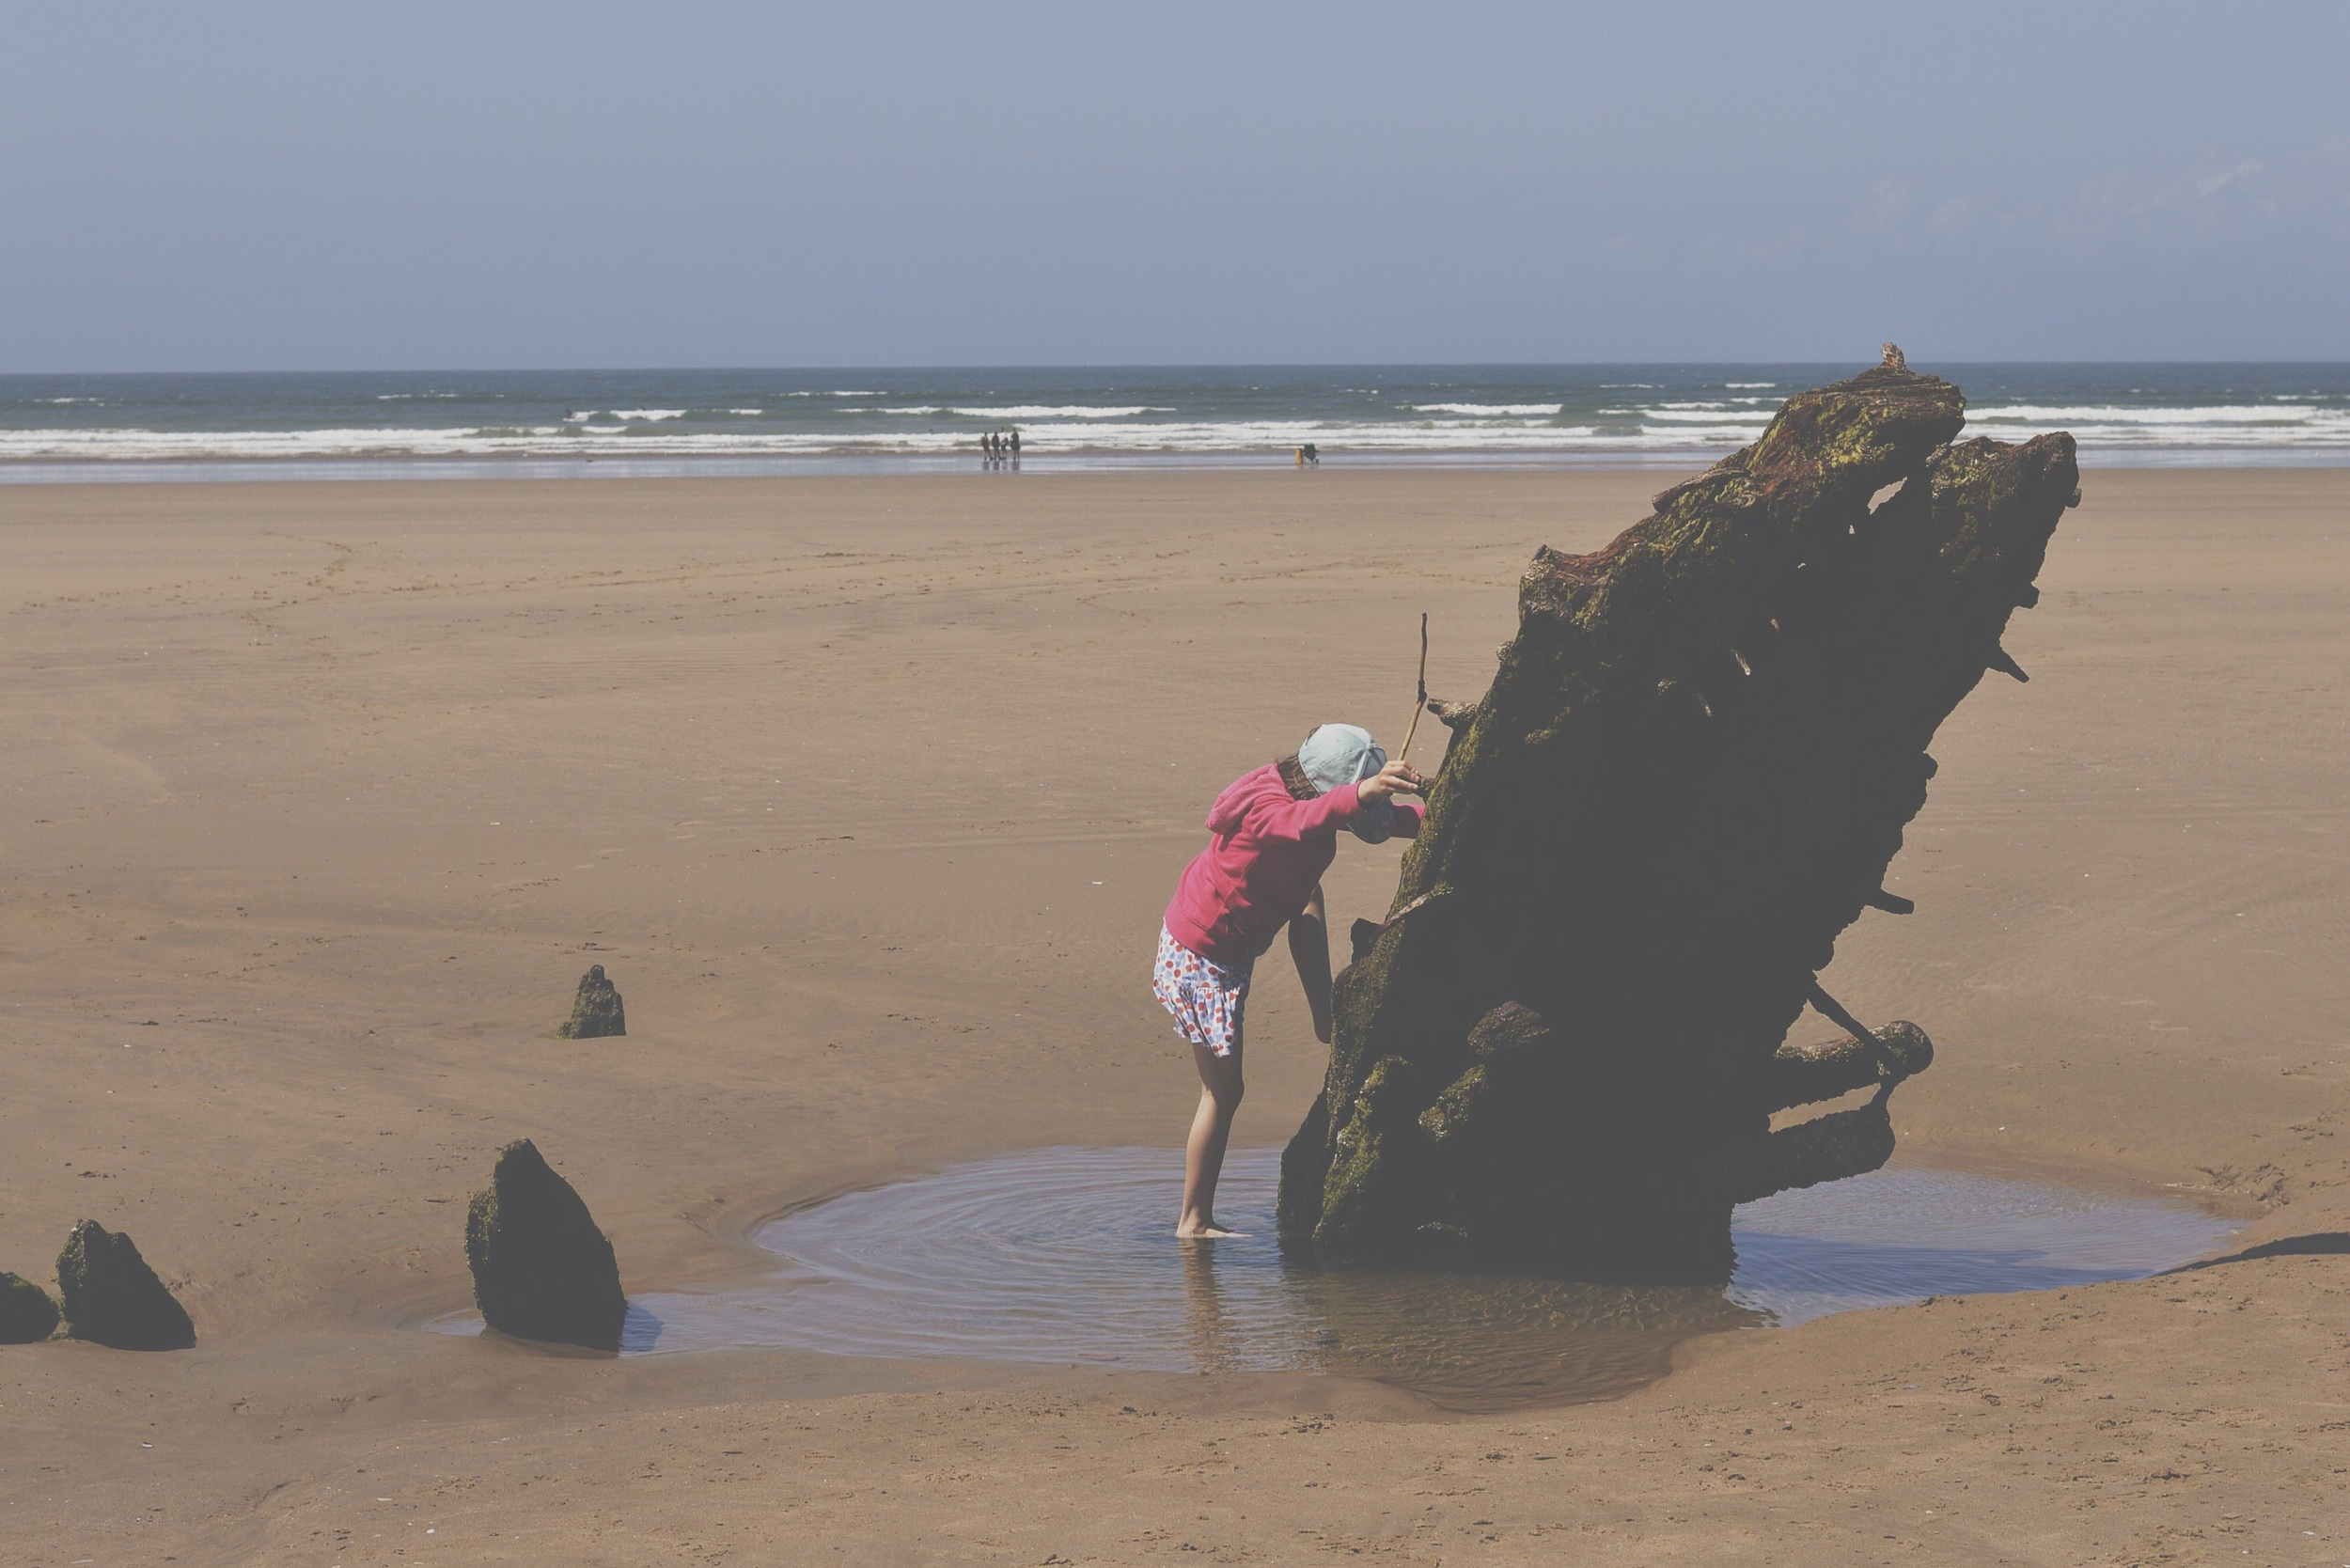 Did I mention there's an old shipwreck to look at. (*For look atread play on)